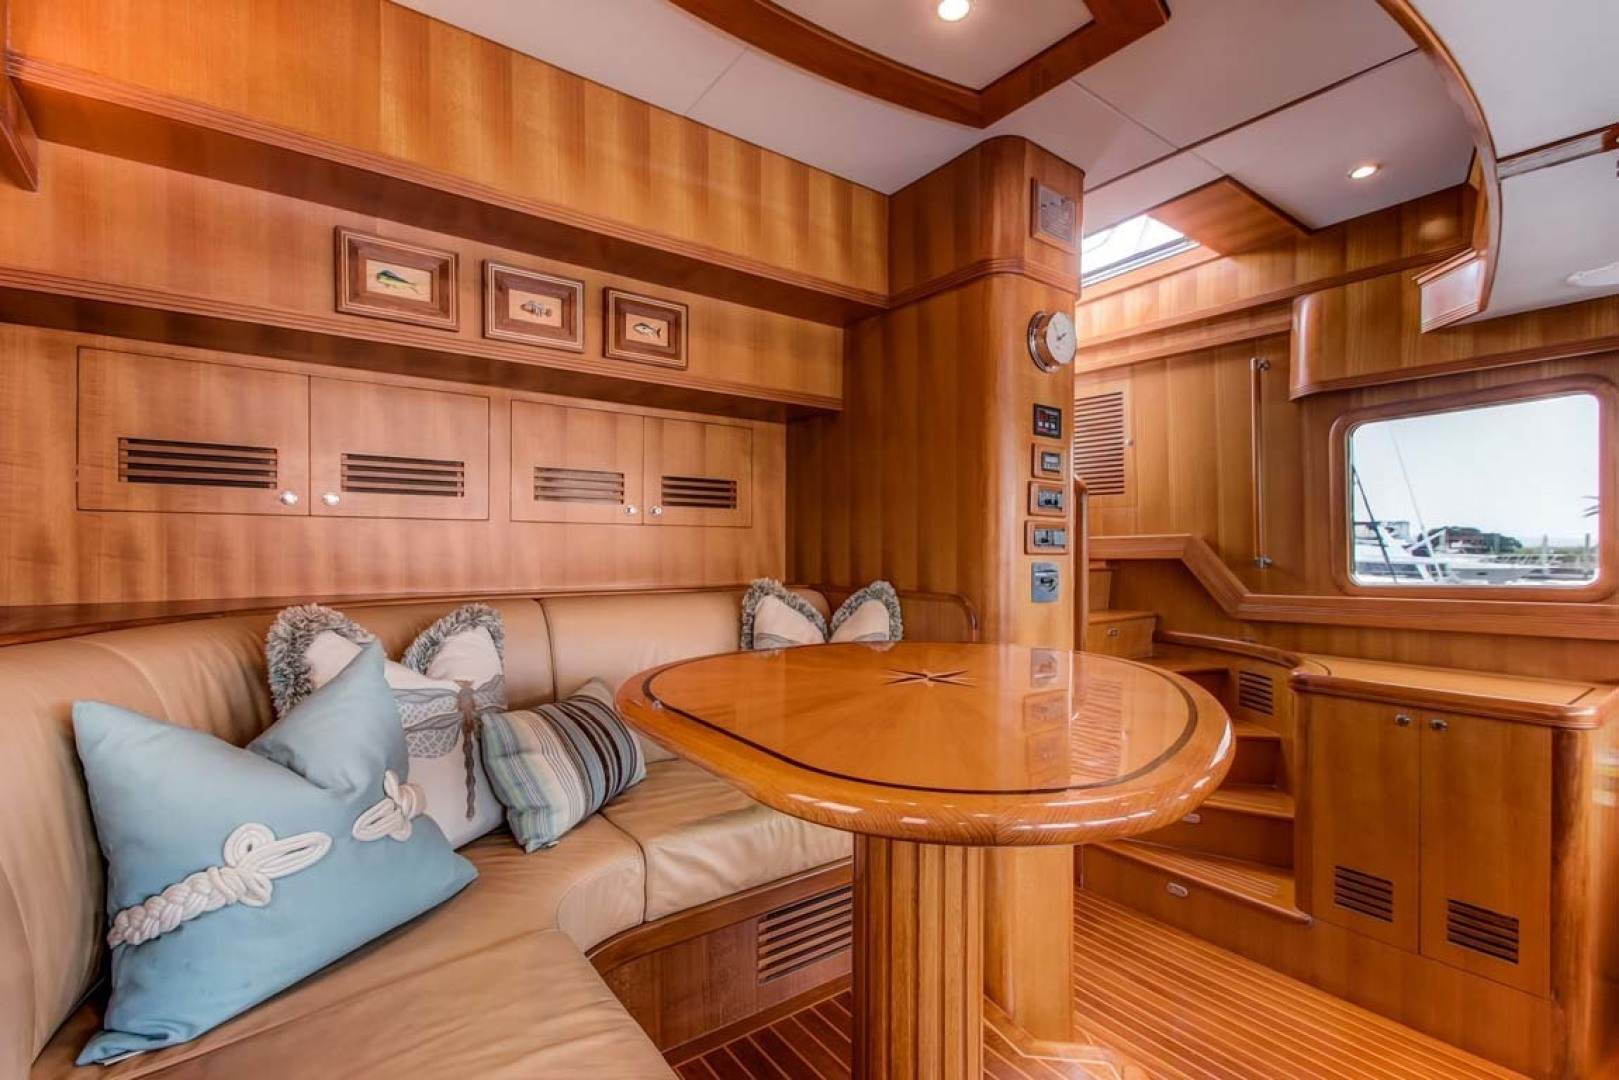 Selene-60 Ocean Trawler 2010-Gypsy Magic Jacksonville-Florida-United States-Helm+Settee-1346728 | Thumbnail